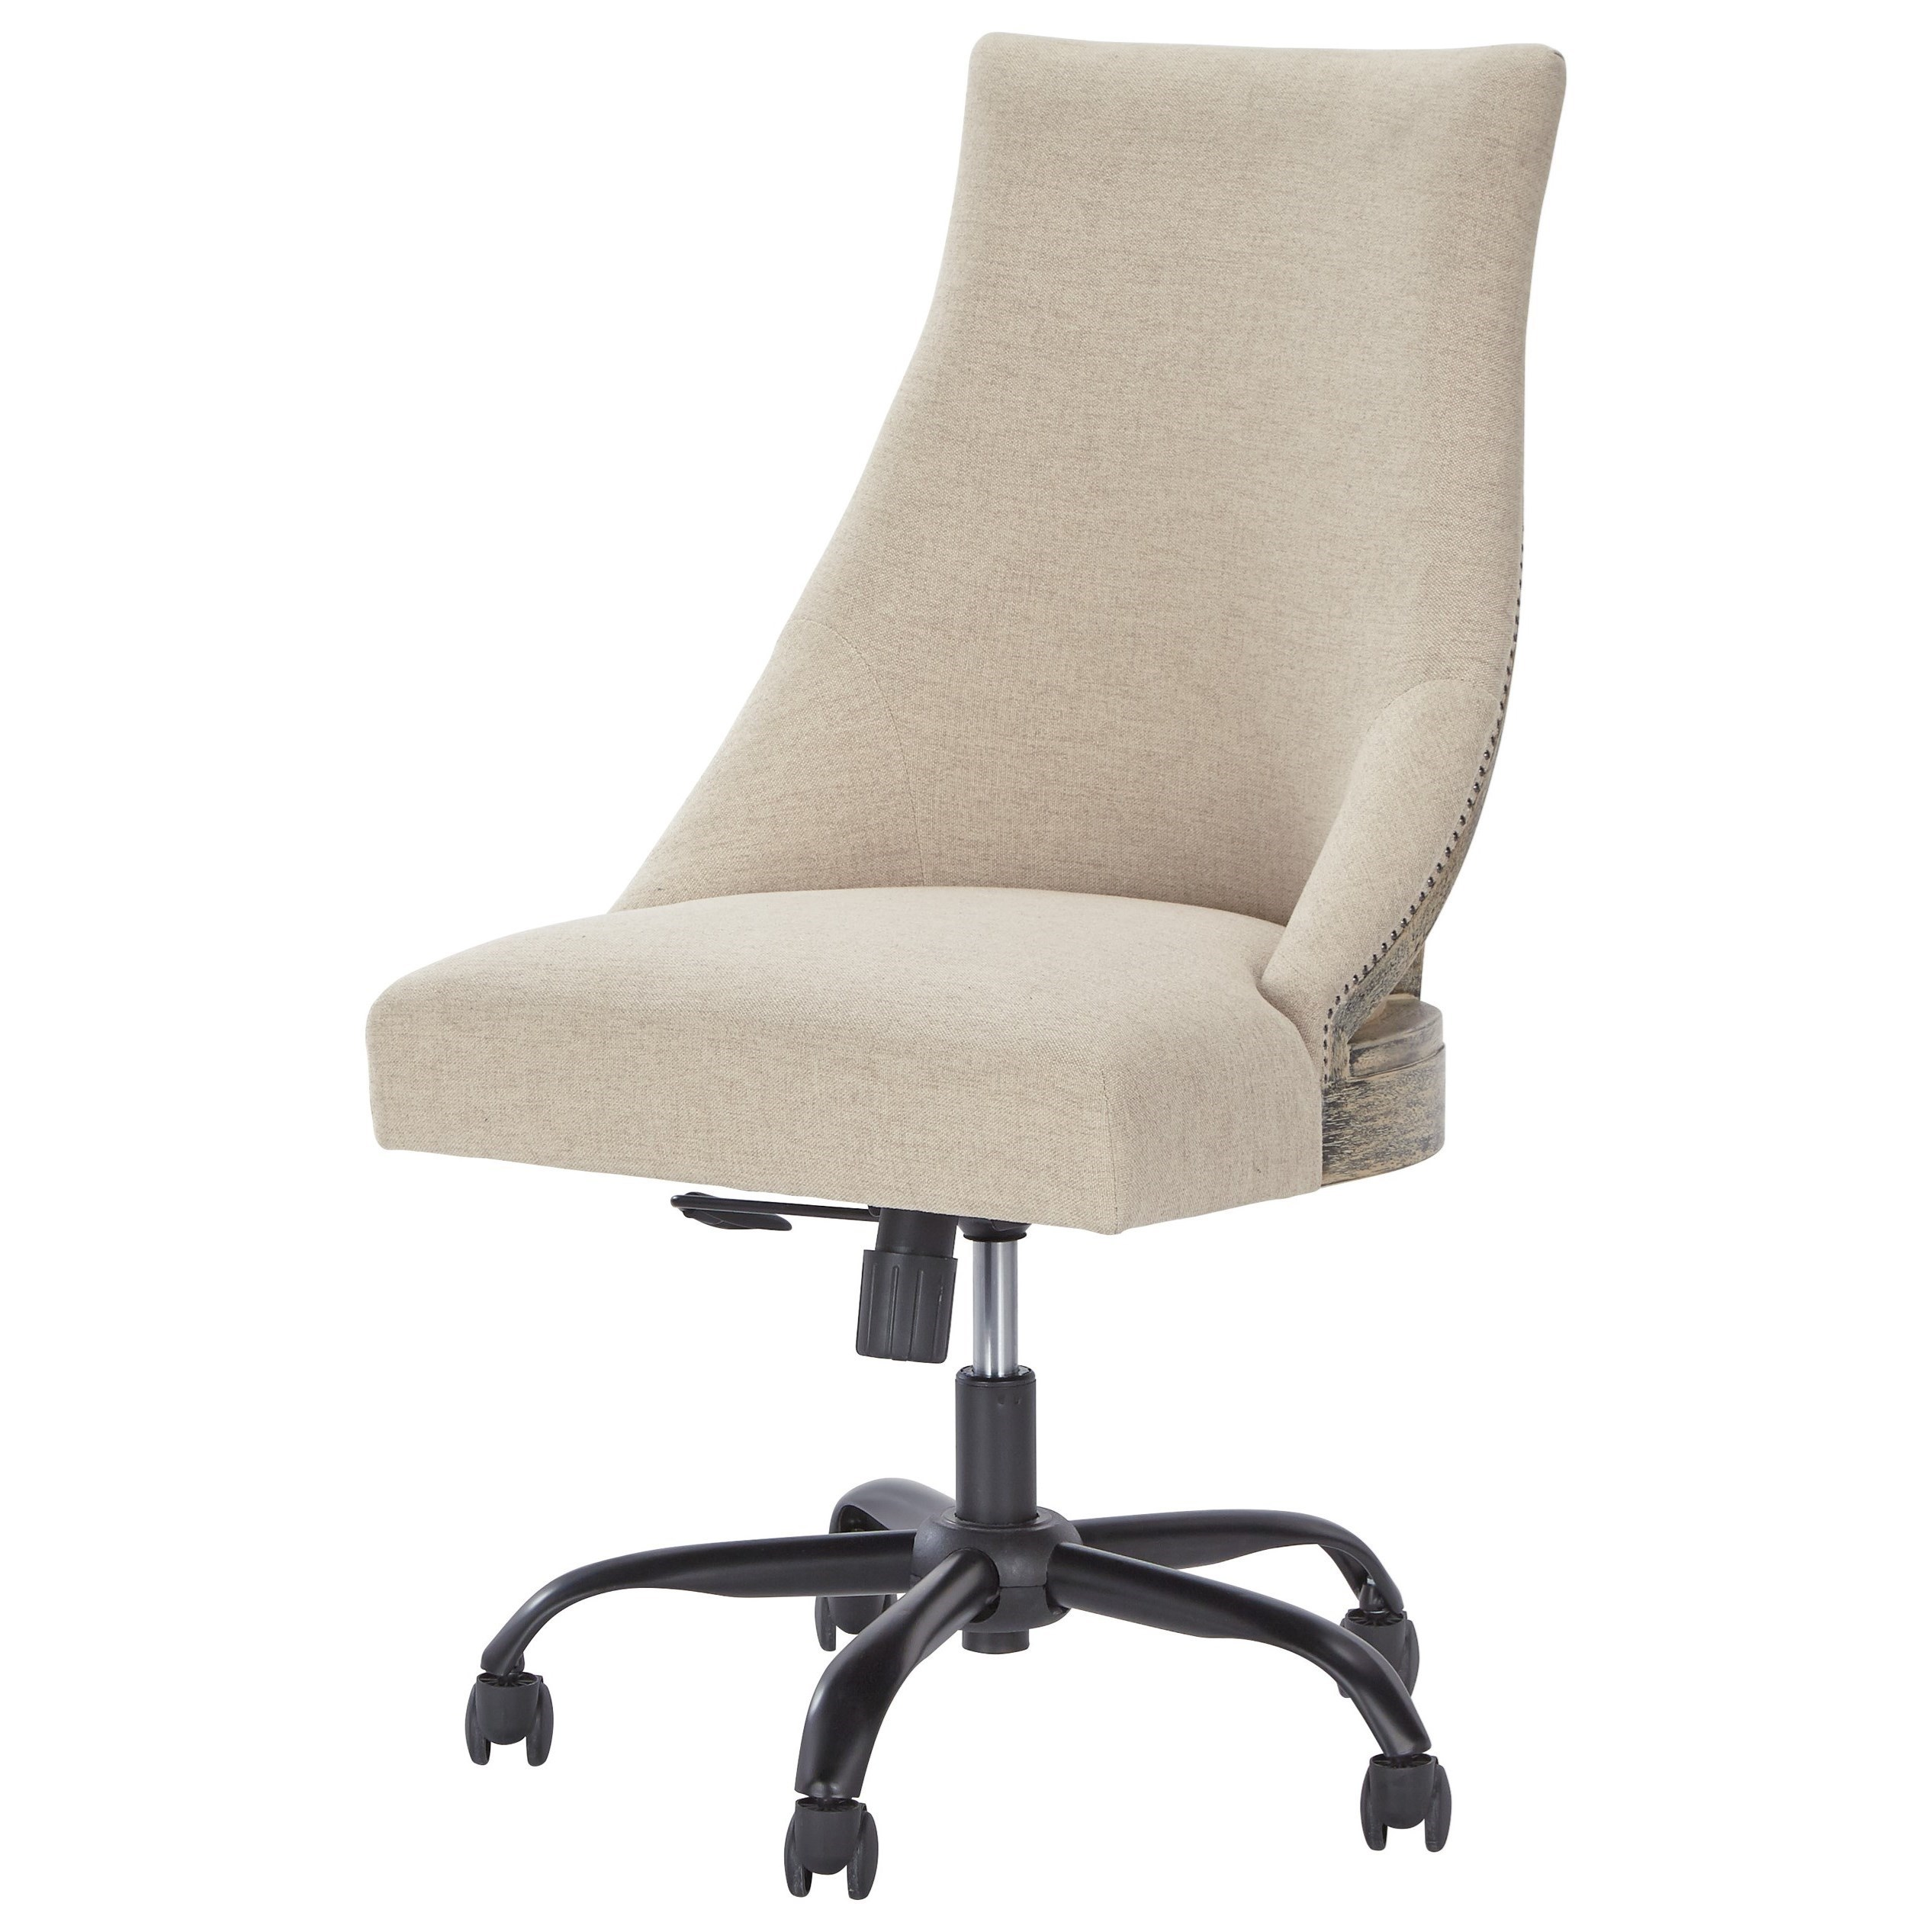 Ashley Chairs Office Chair Program Home Office Swivel Desk Chair In Deconstructed Style By Signature Design By Ashley At Conlin S Furniture